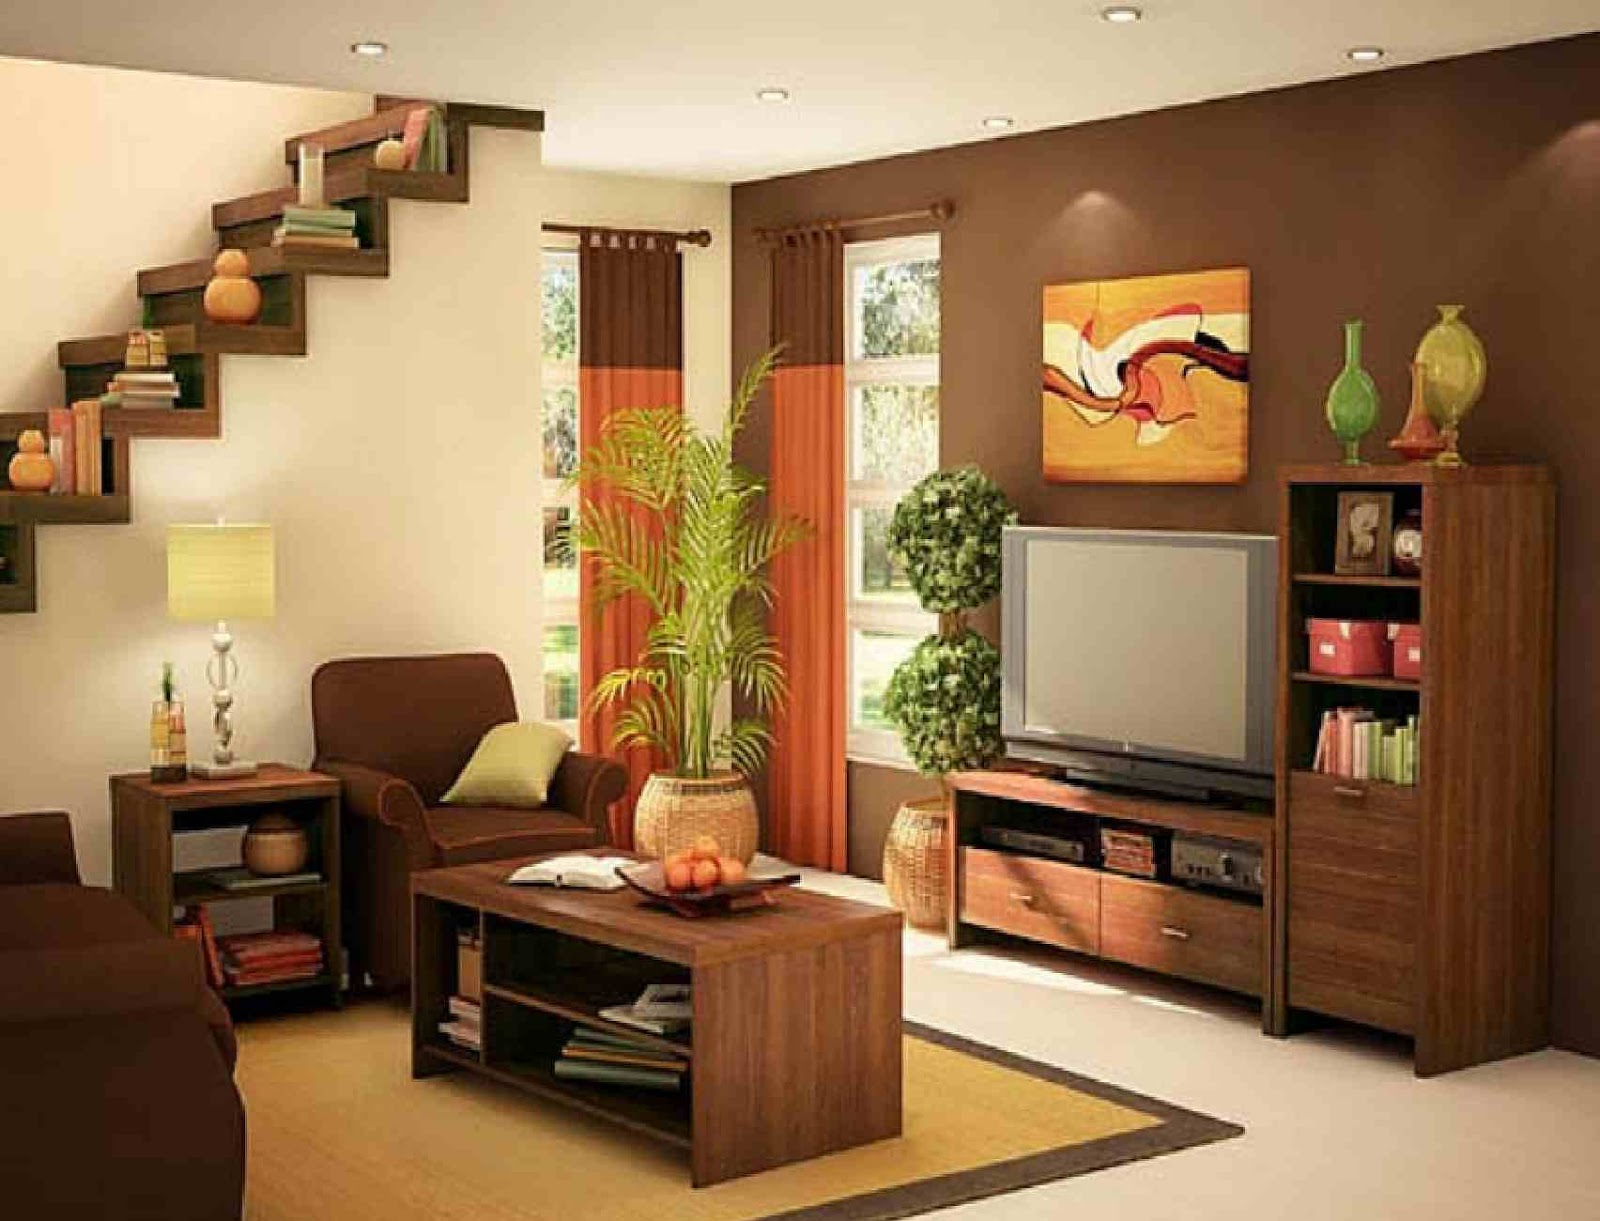 Home interior designs simple living room designs for Room design easy